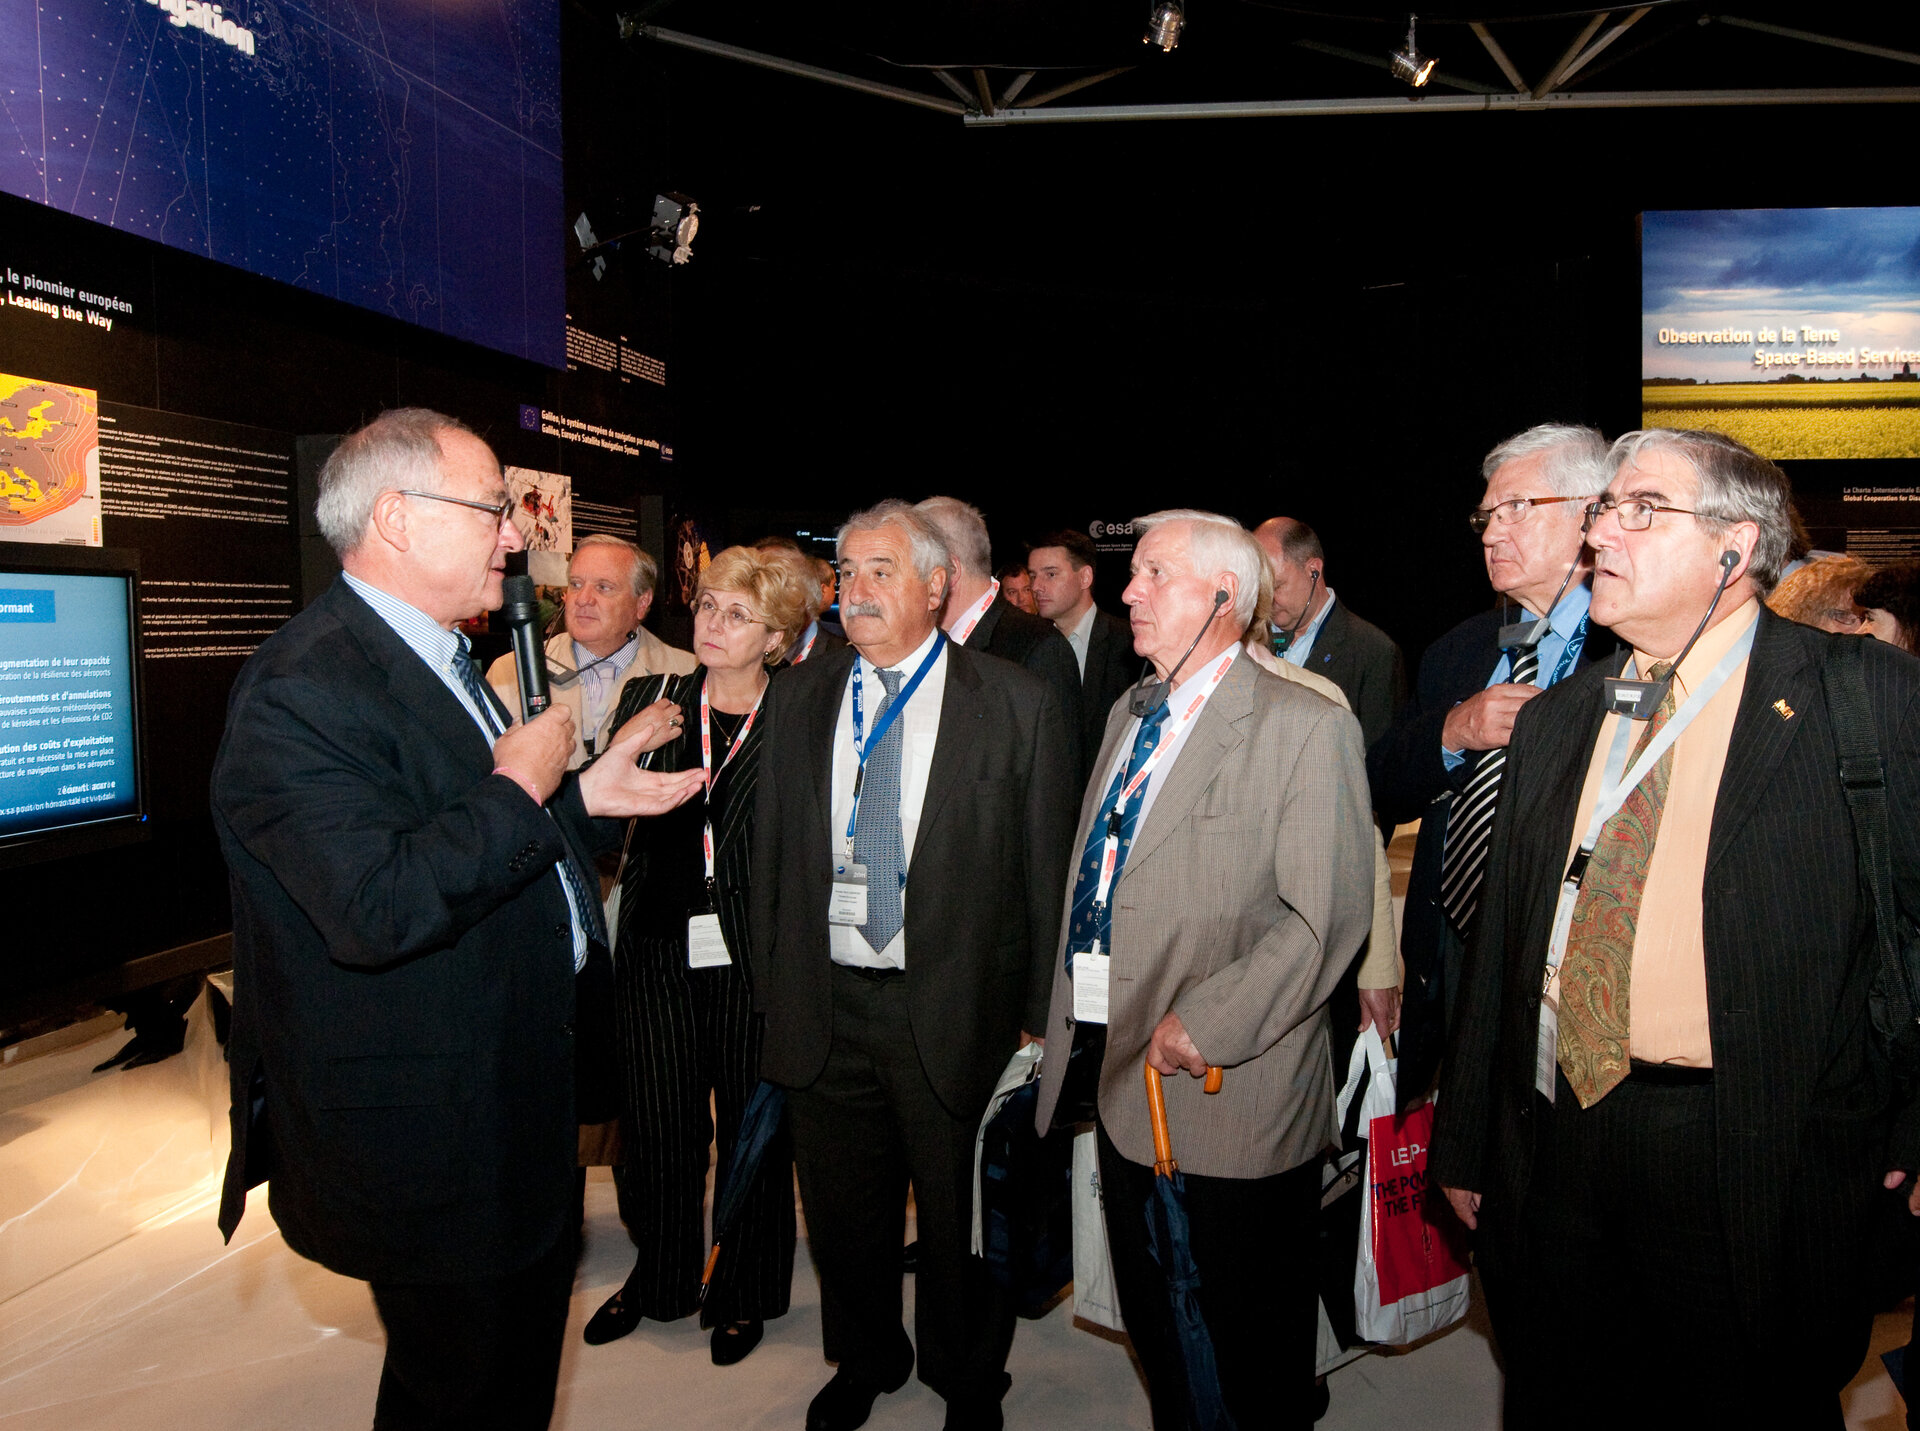 Jean-Jacques Dordain and the French Parliamentary Group on Space visit the ESA pavilion